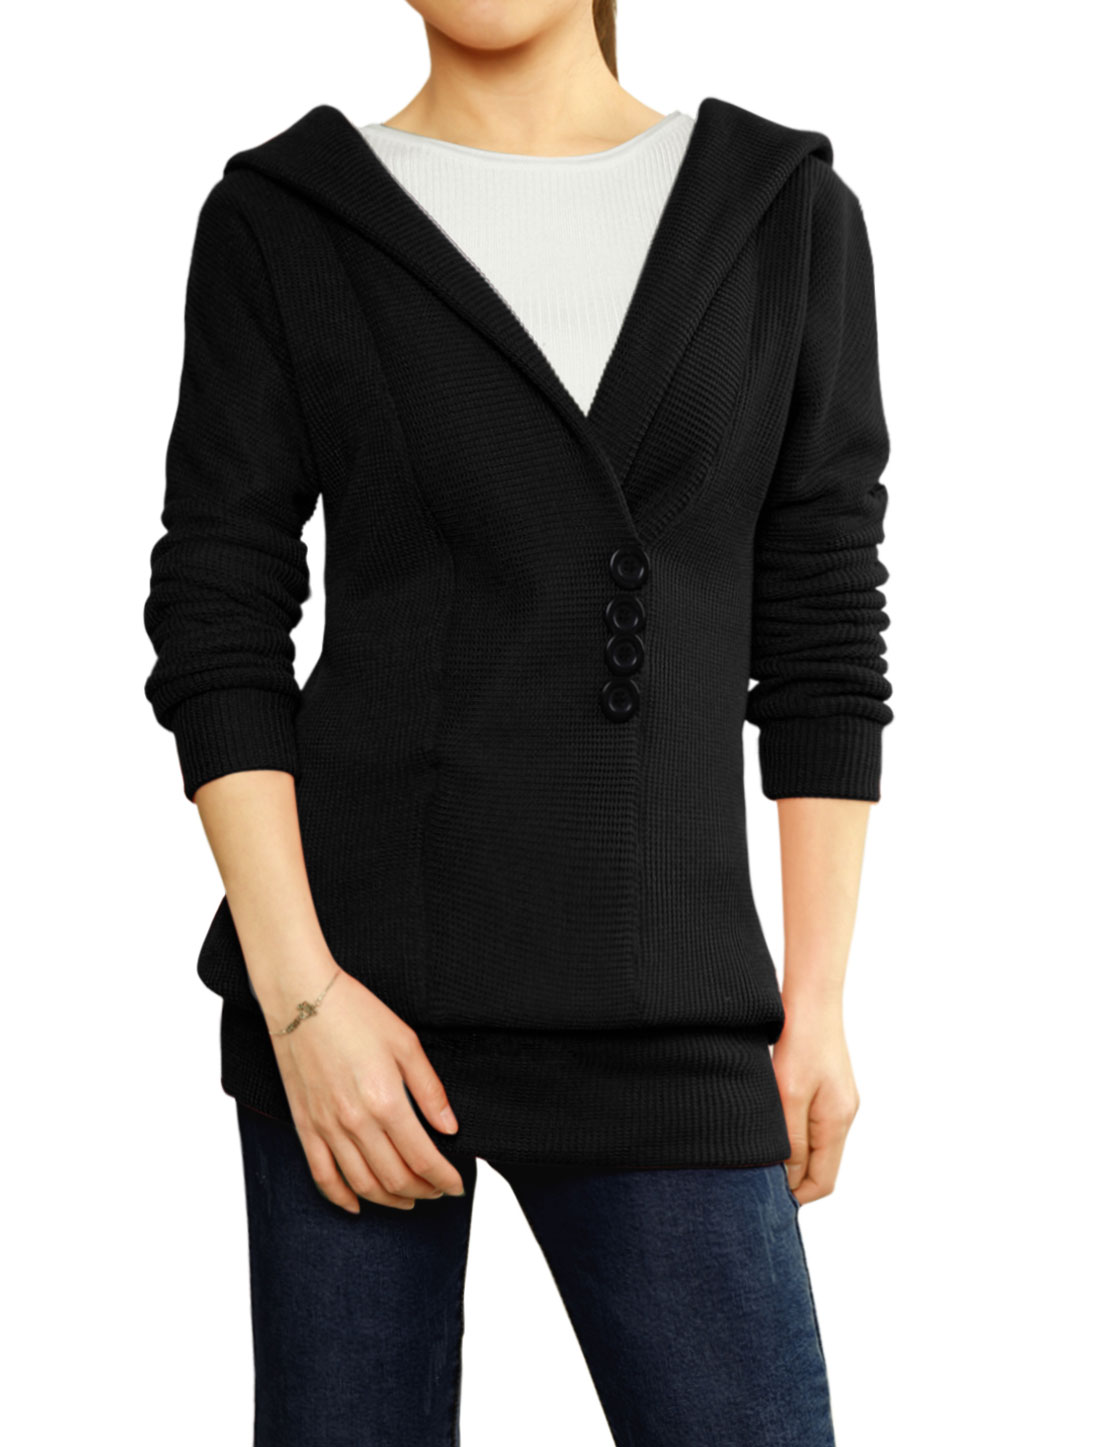 Ladies Black Long Sleeves Fleece Inner Pullover Tunic Sweater S